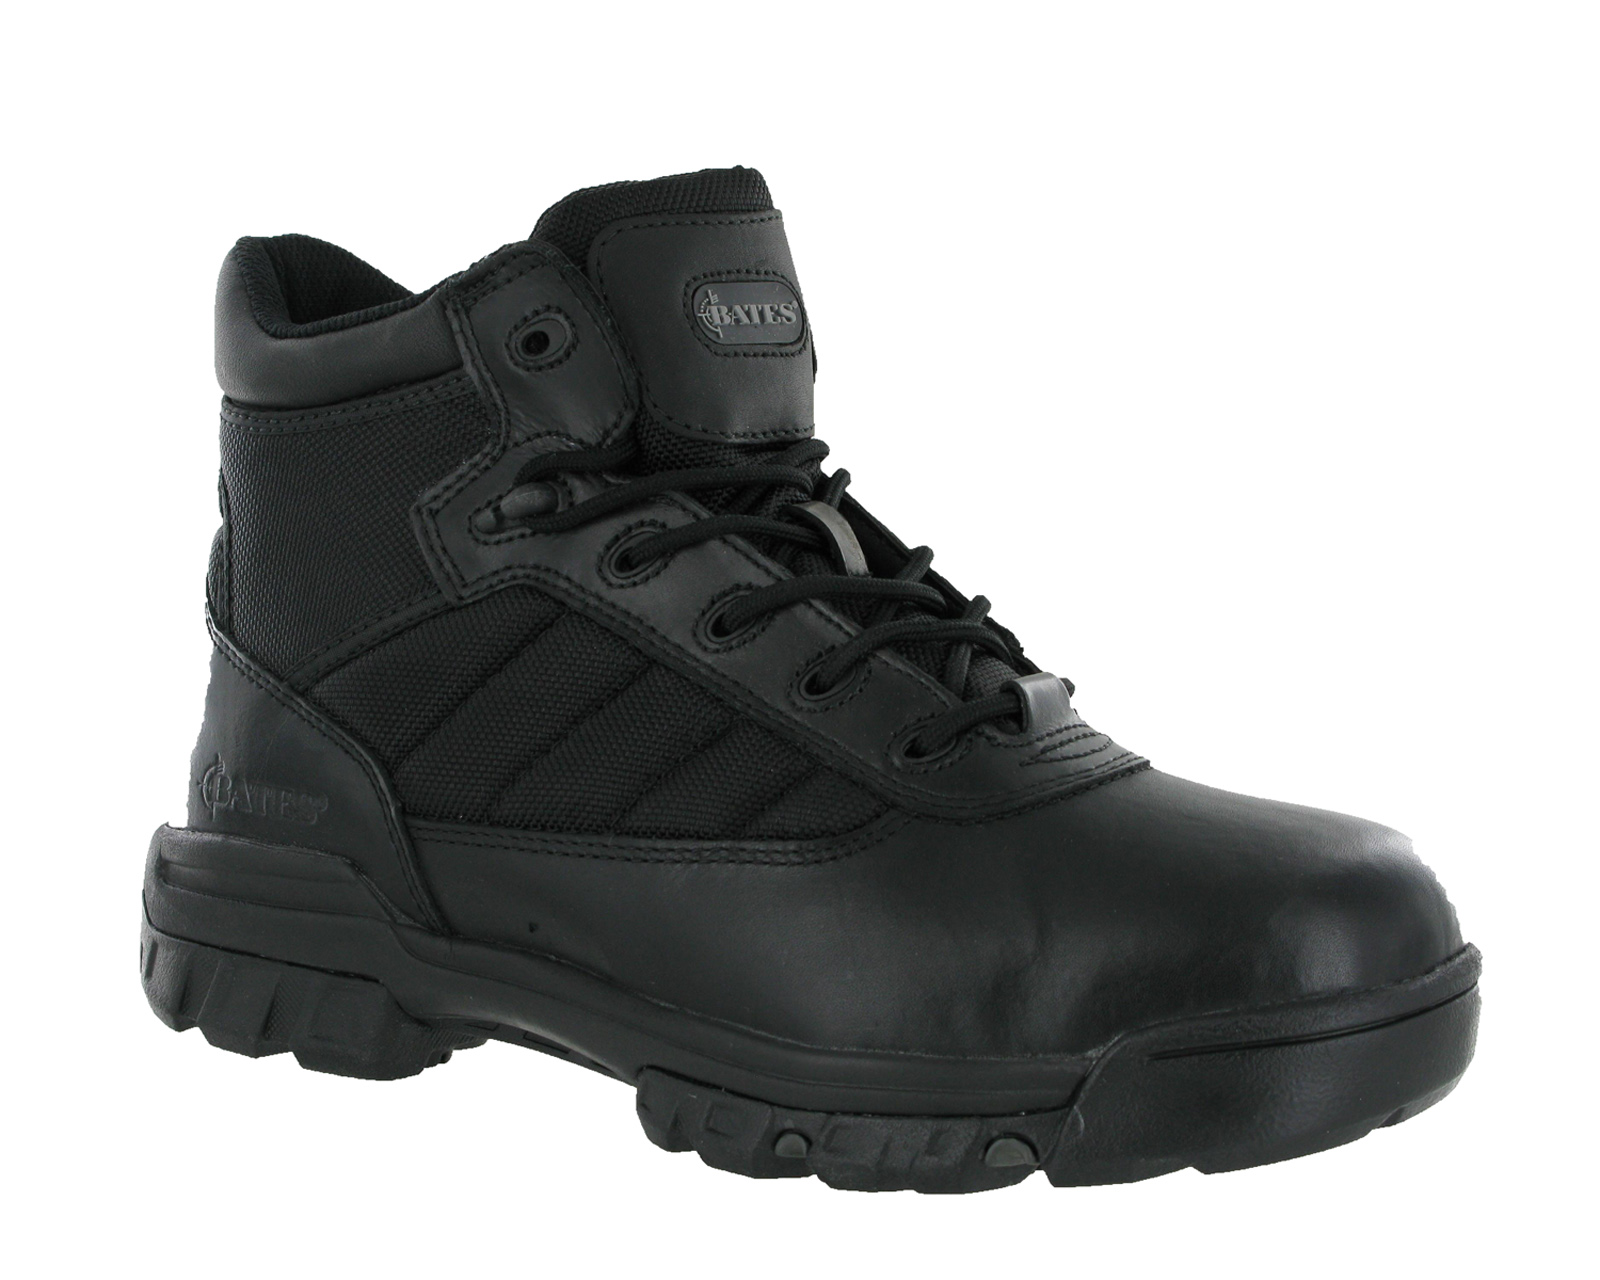 New-Mens-Bates-5-Tactical-Military-Sport-Black-Leather-Ankle-Boots-Size-3-14-UK